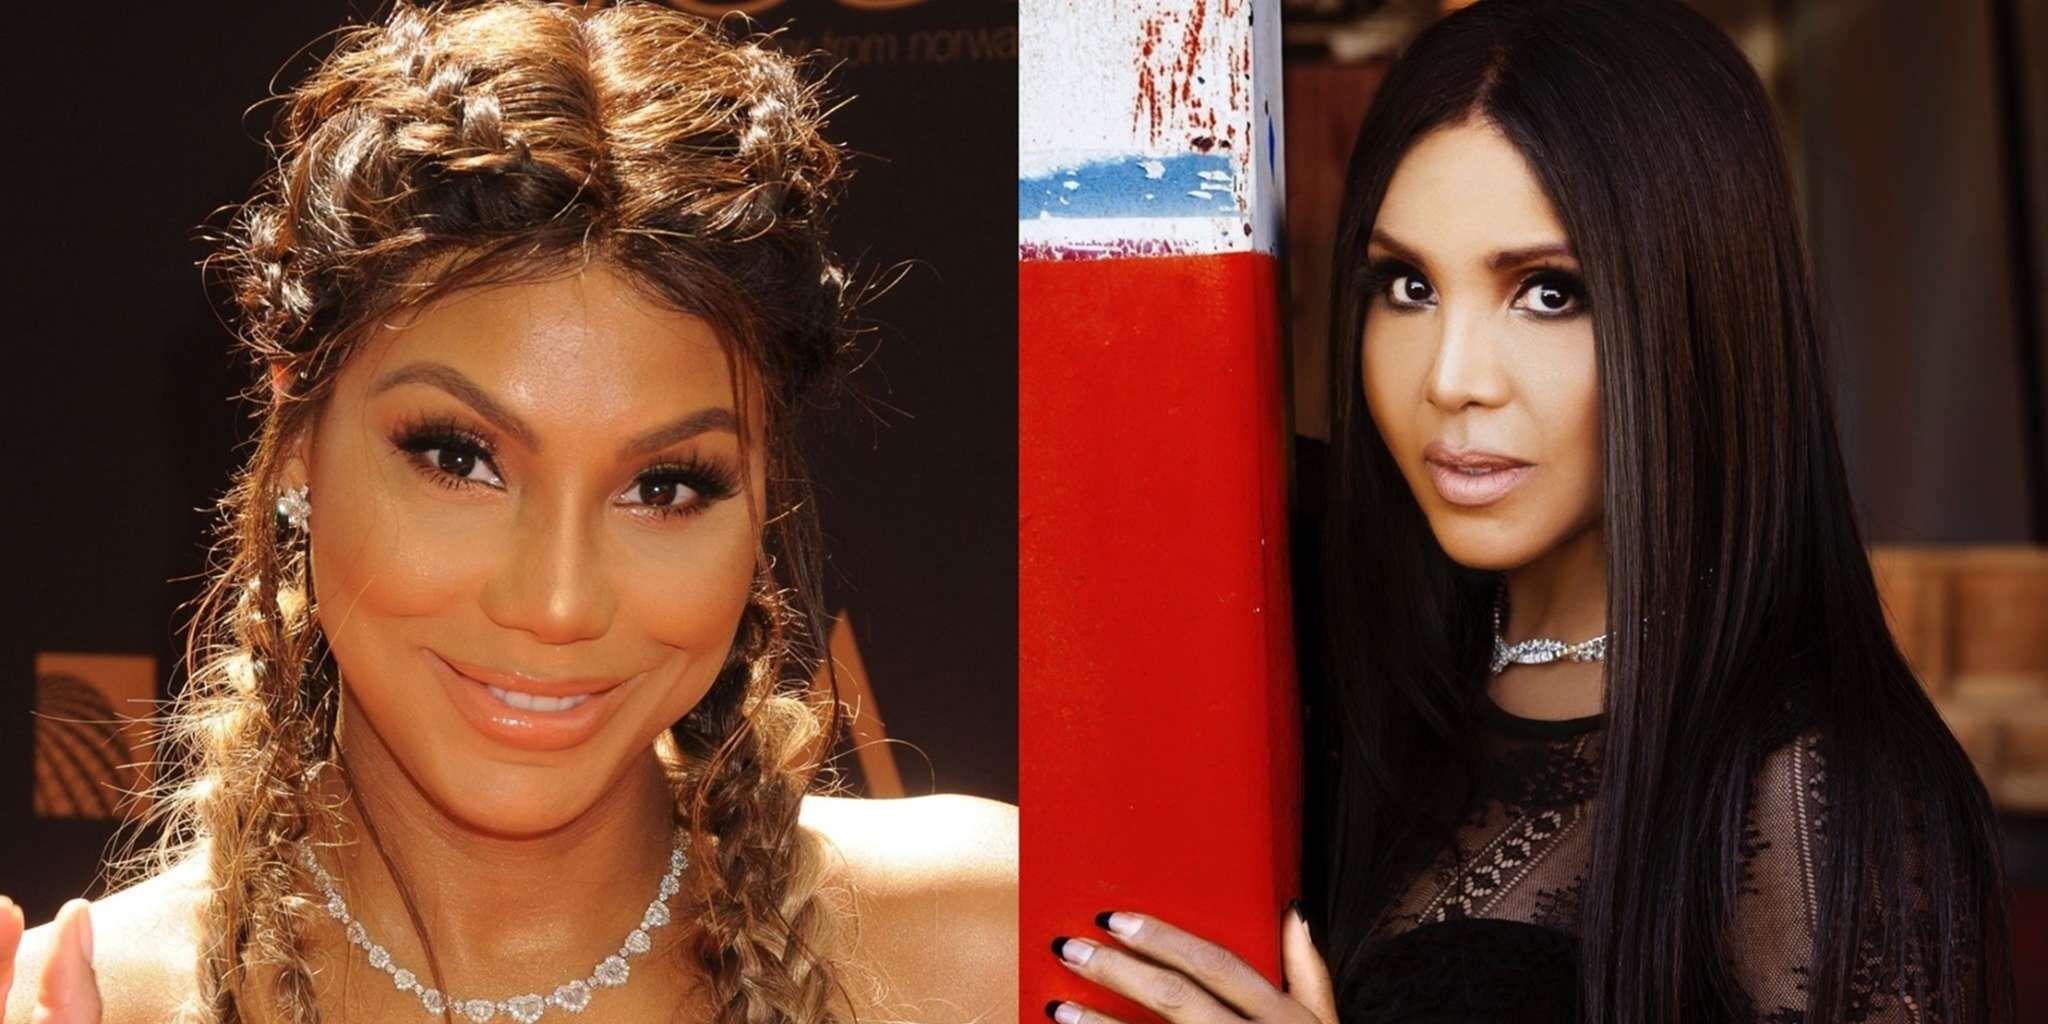 Tamar Braxton And Her Sister Toni Braxton Remember One Of The Hardest Times In Their Lives - Tiny Harris Is Here For Them